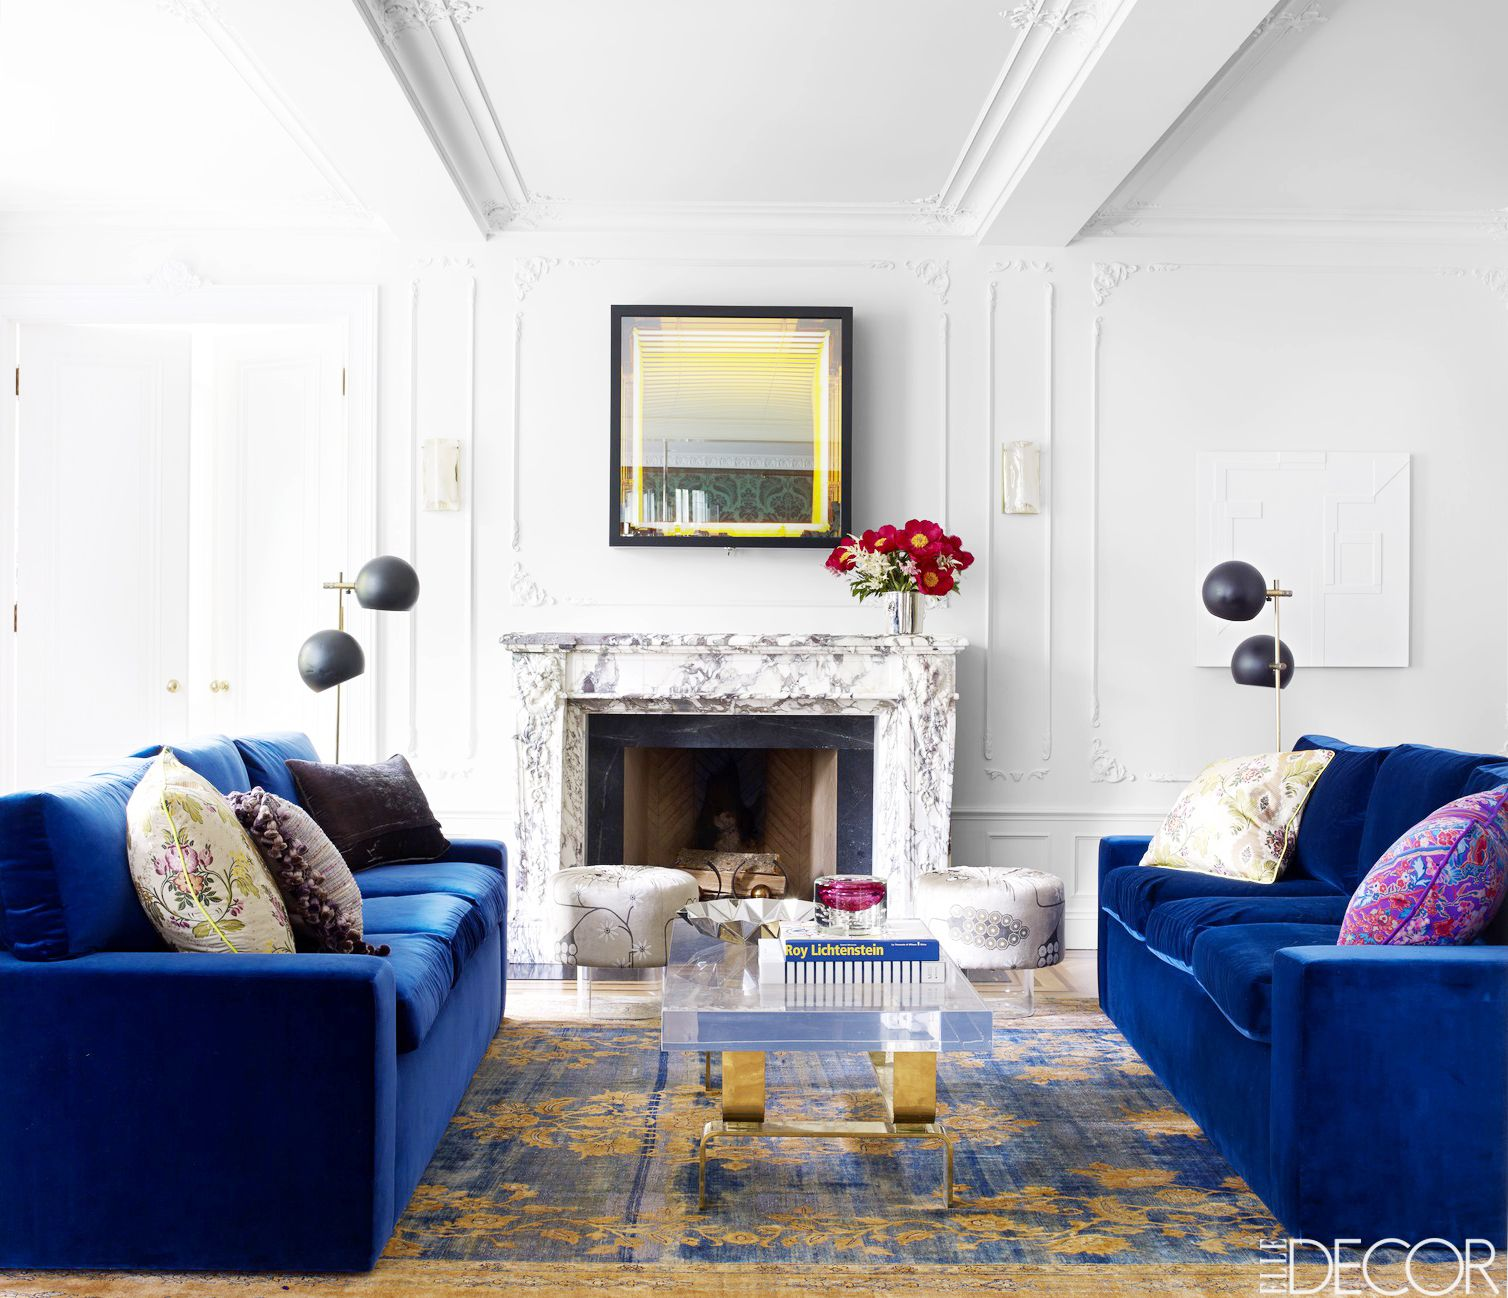 A Glamorous New York Apartment With a Dash of Drama | Marbles, Bald ...